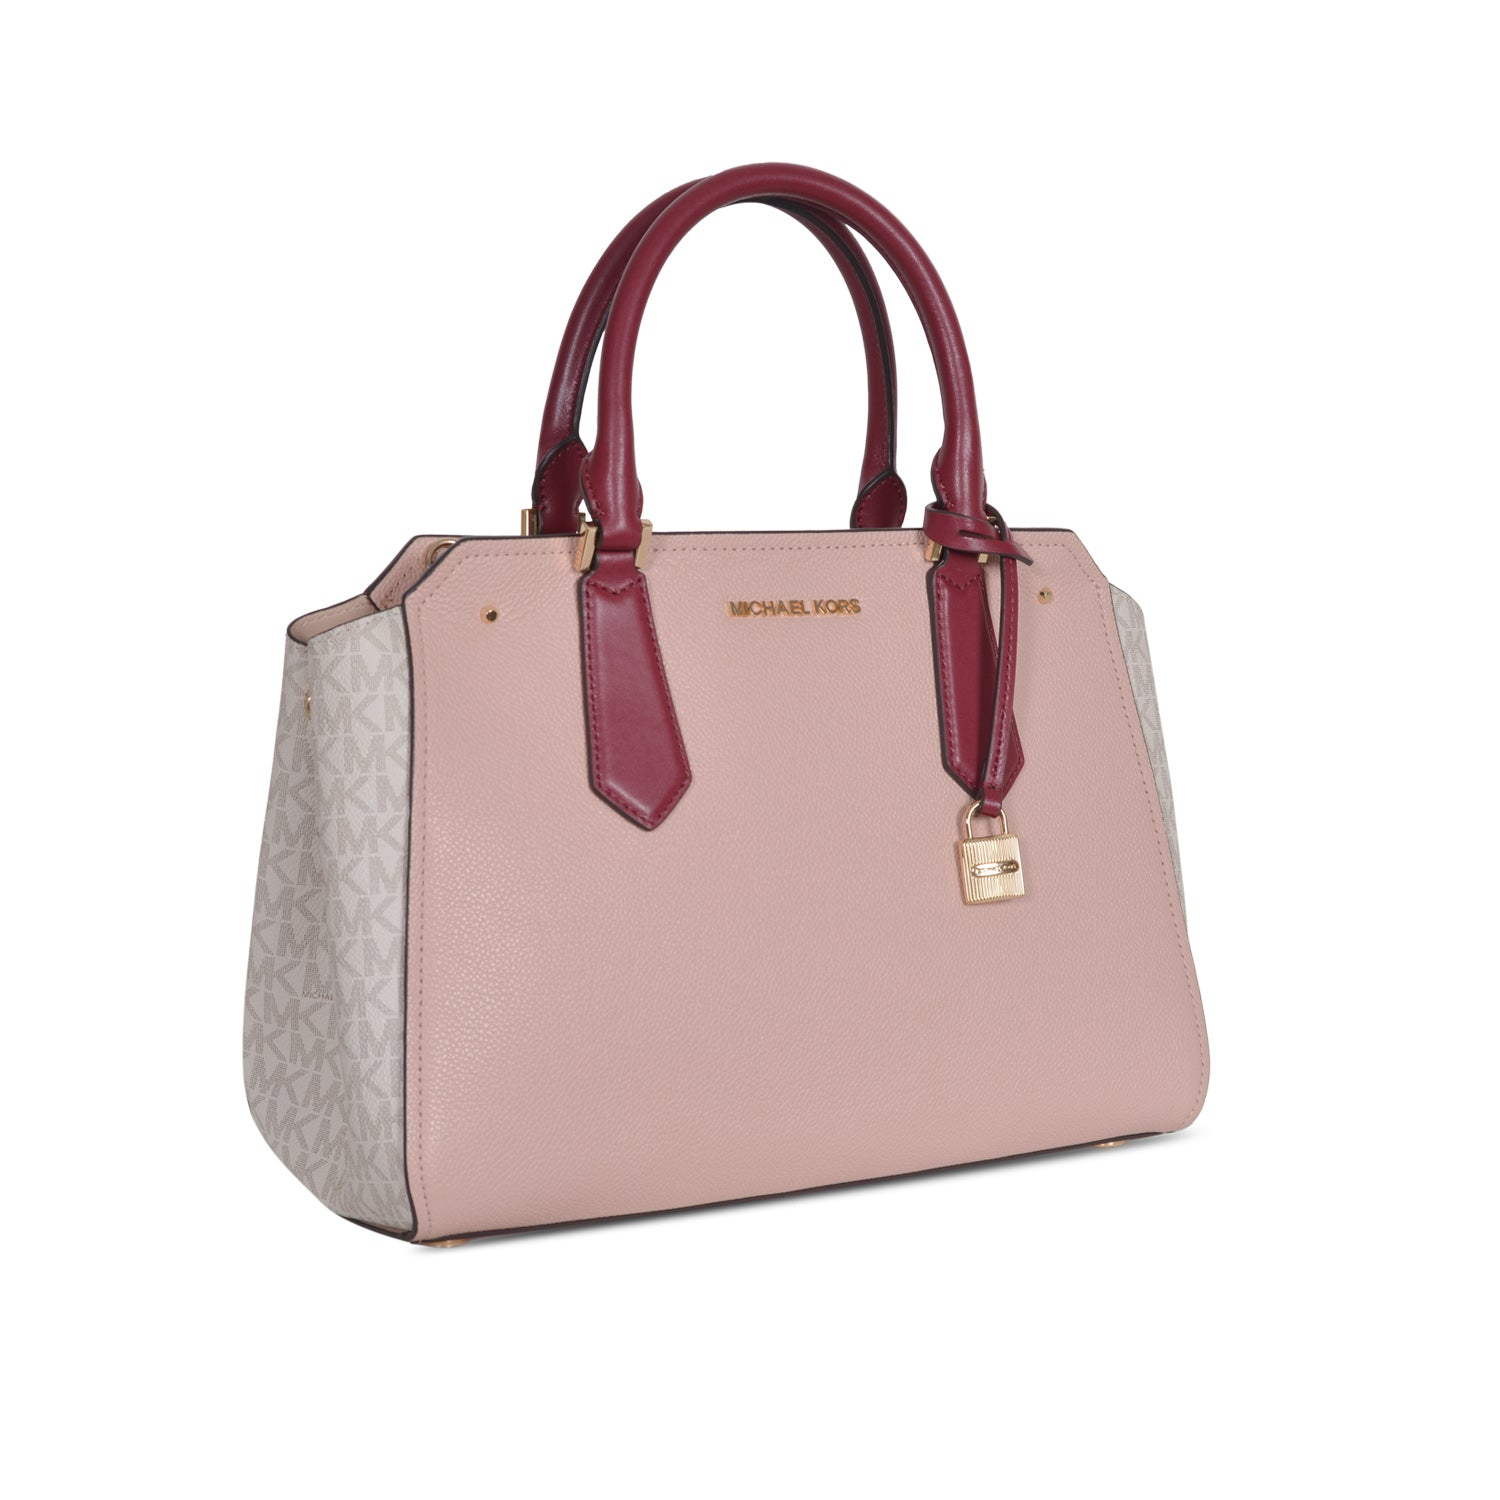 MICHAEL KORS HAYES LARGE  LEATHER DUAL TONE ( PASTEL PINK & white ) SATCHEL CROSSBODY BAG